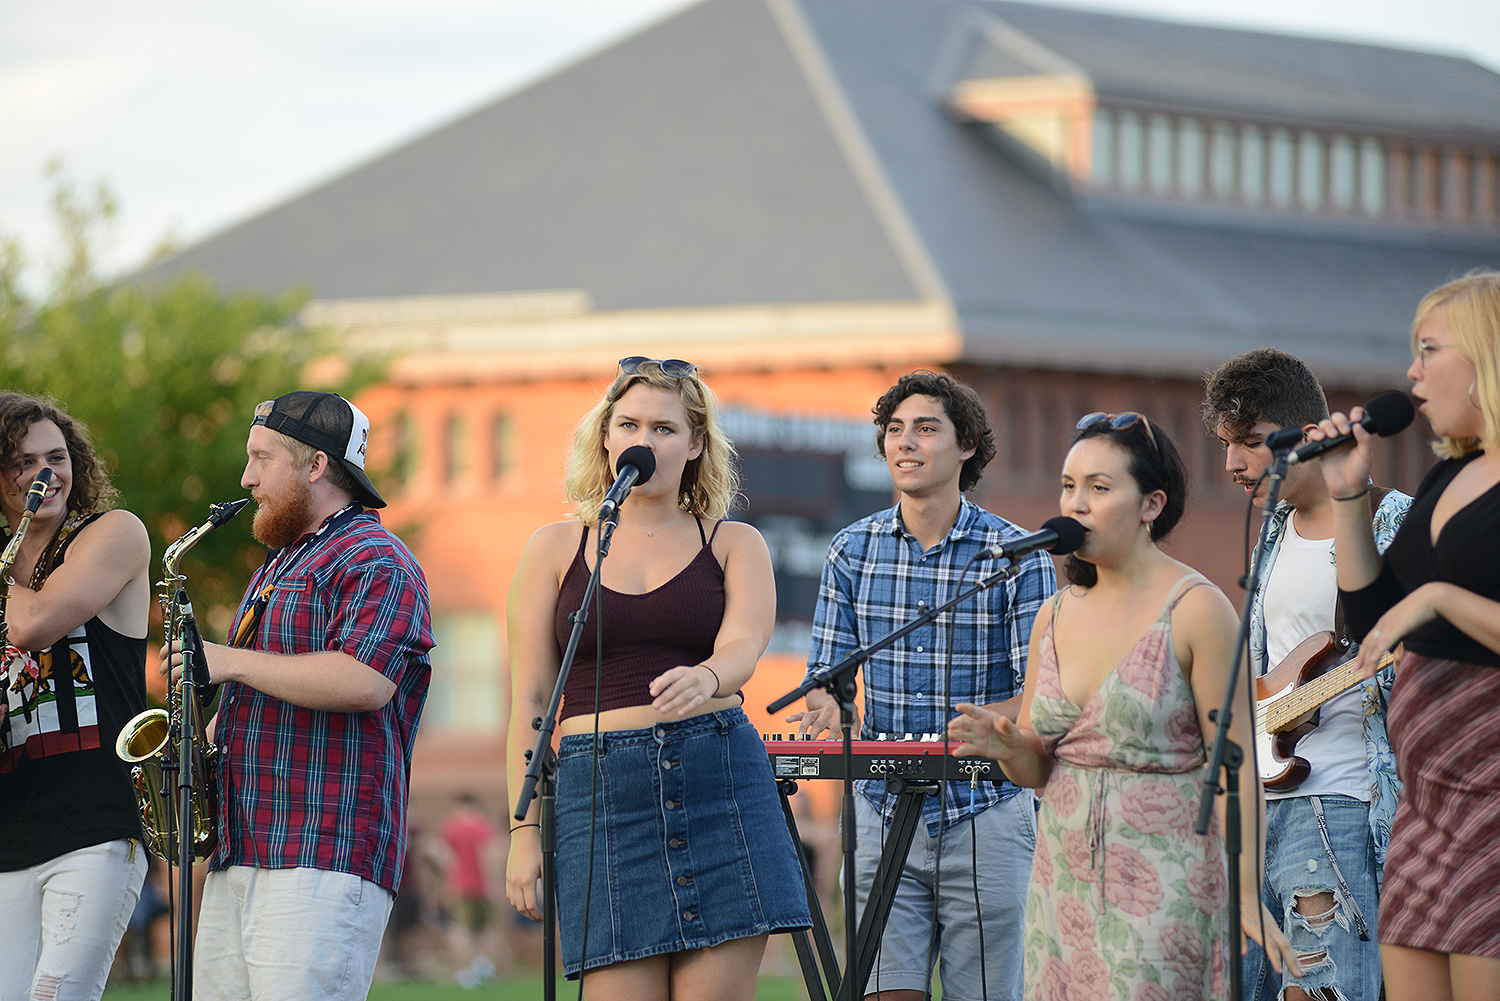 The MASH at Wesleyan University, Sept. 9. (Photo by Will Barr '18)